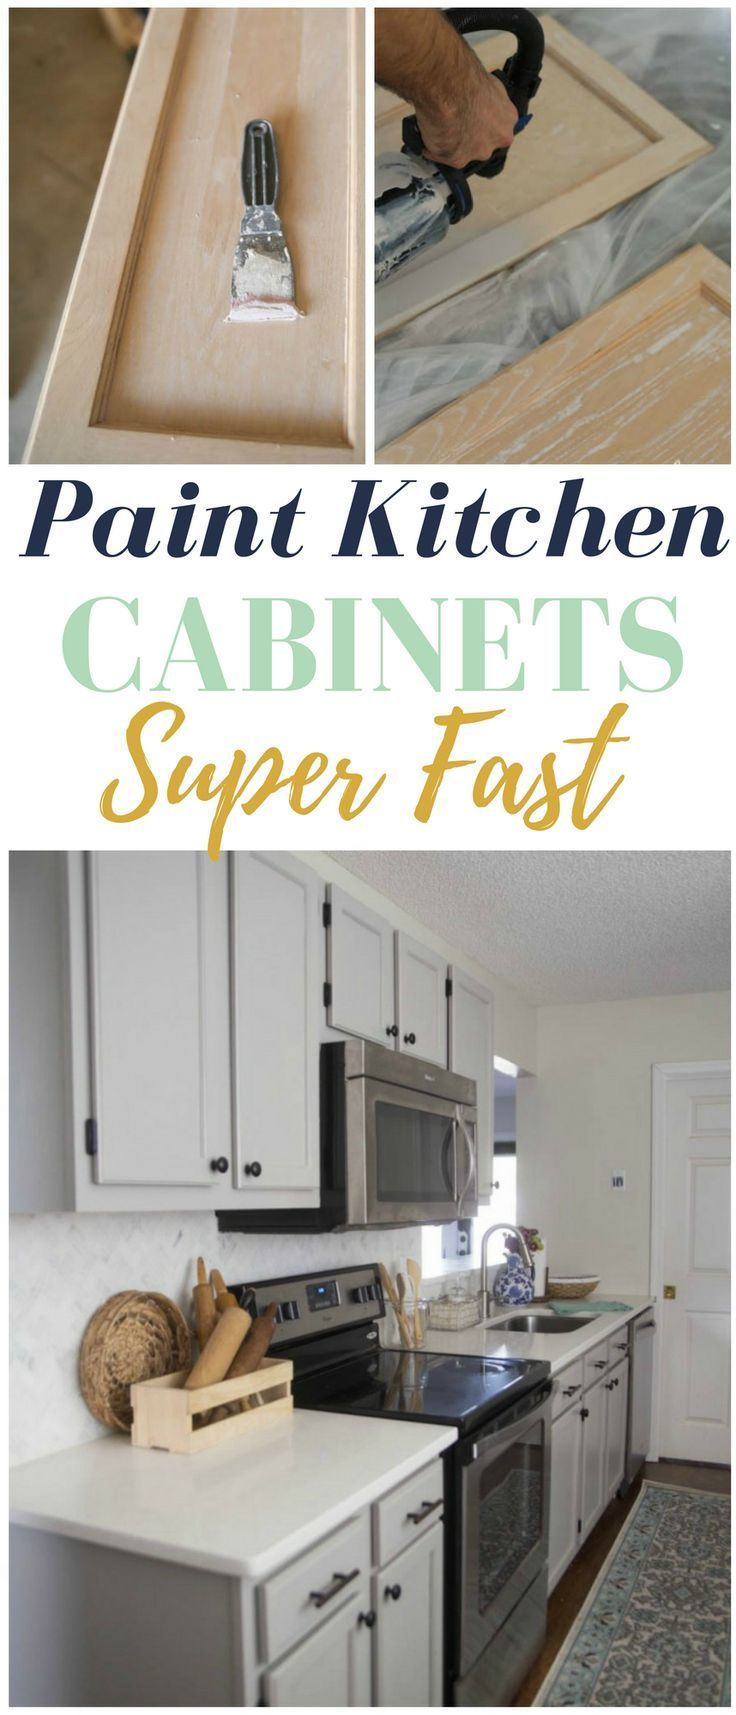 Mueble de cocina topper ideas - How To Paint Kitchen Cabinets Super Fast Some Serious Time Saving Tricks Here